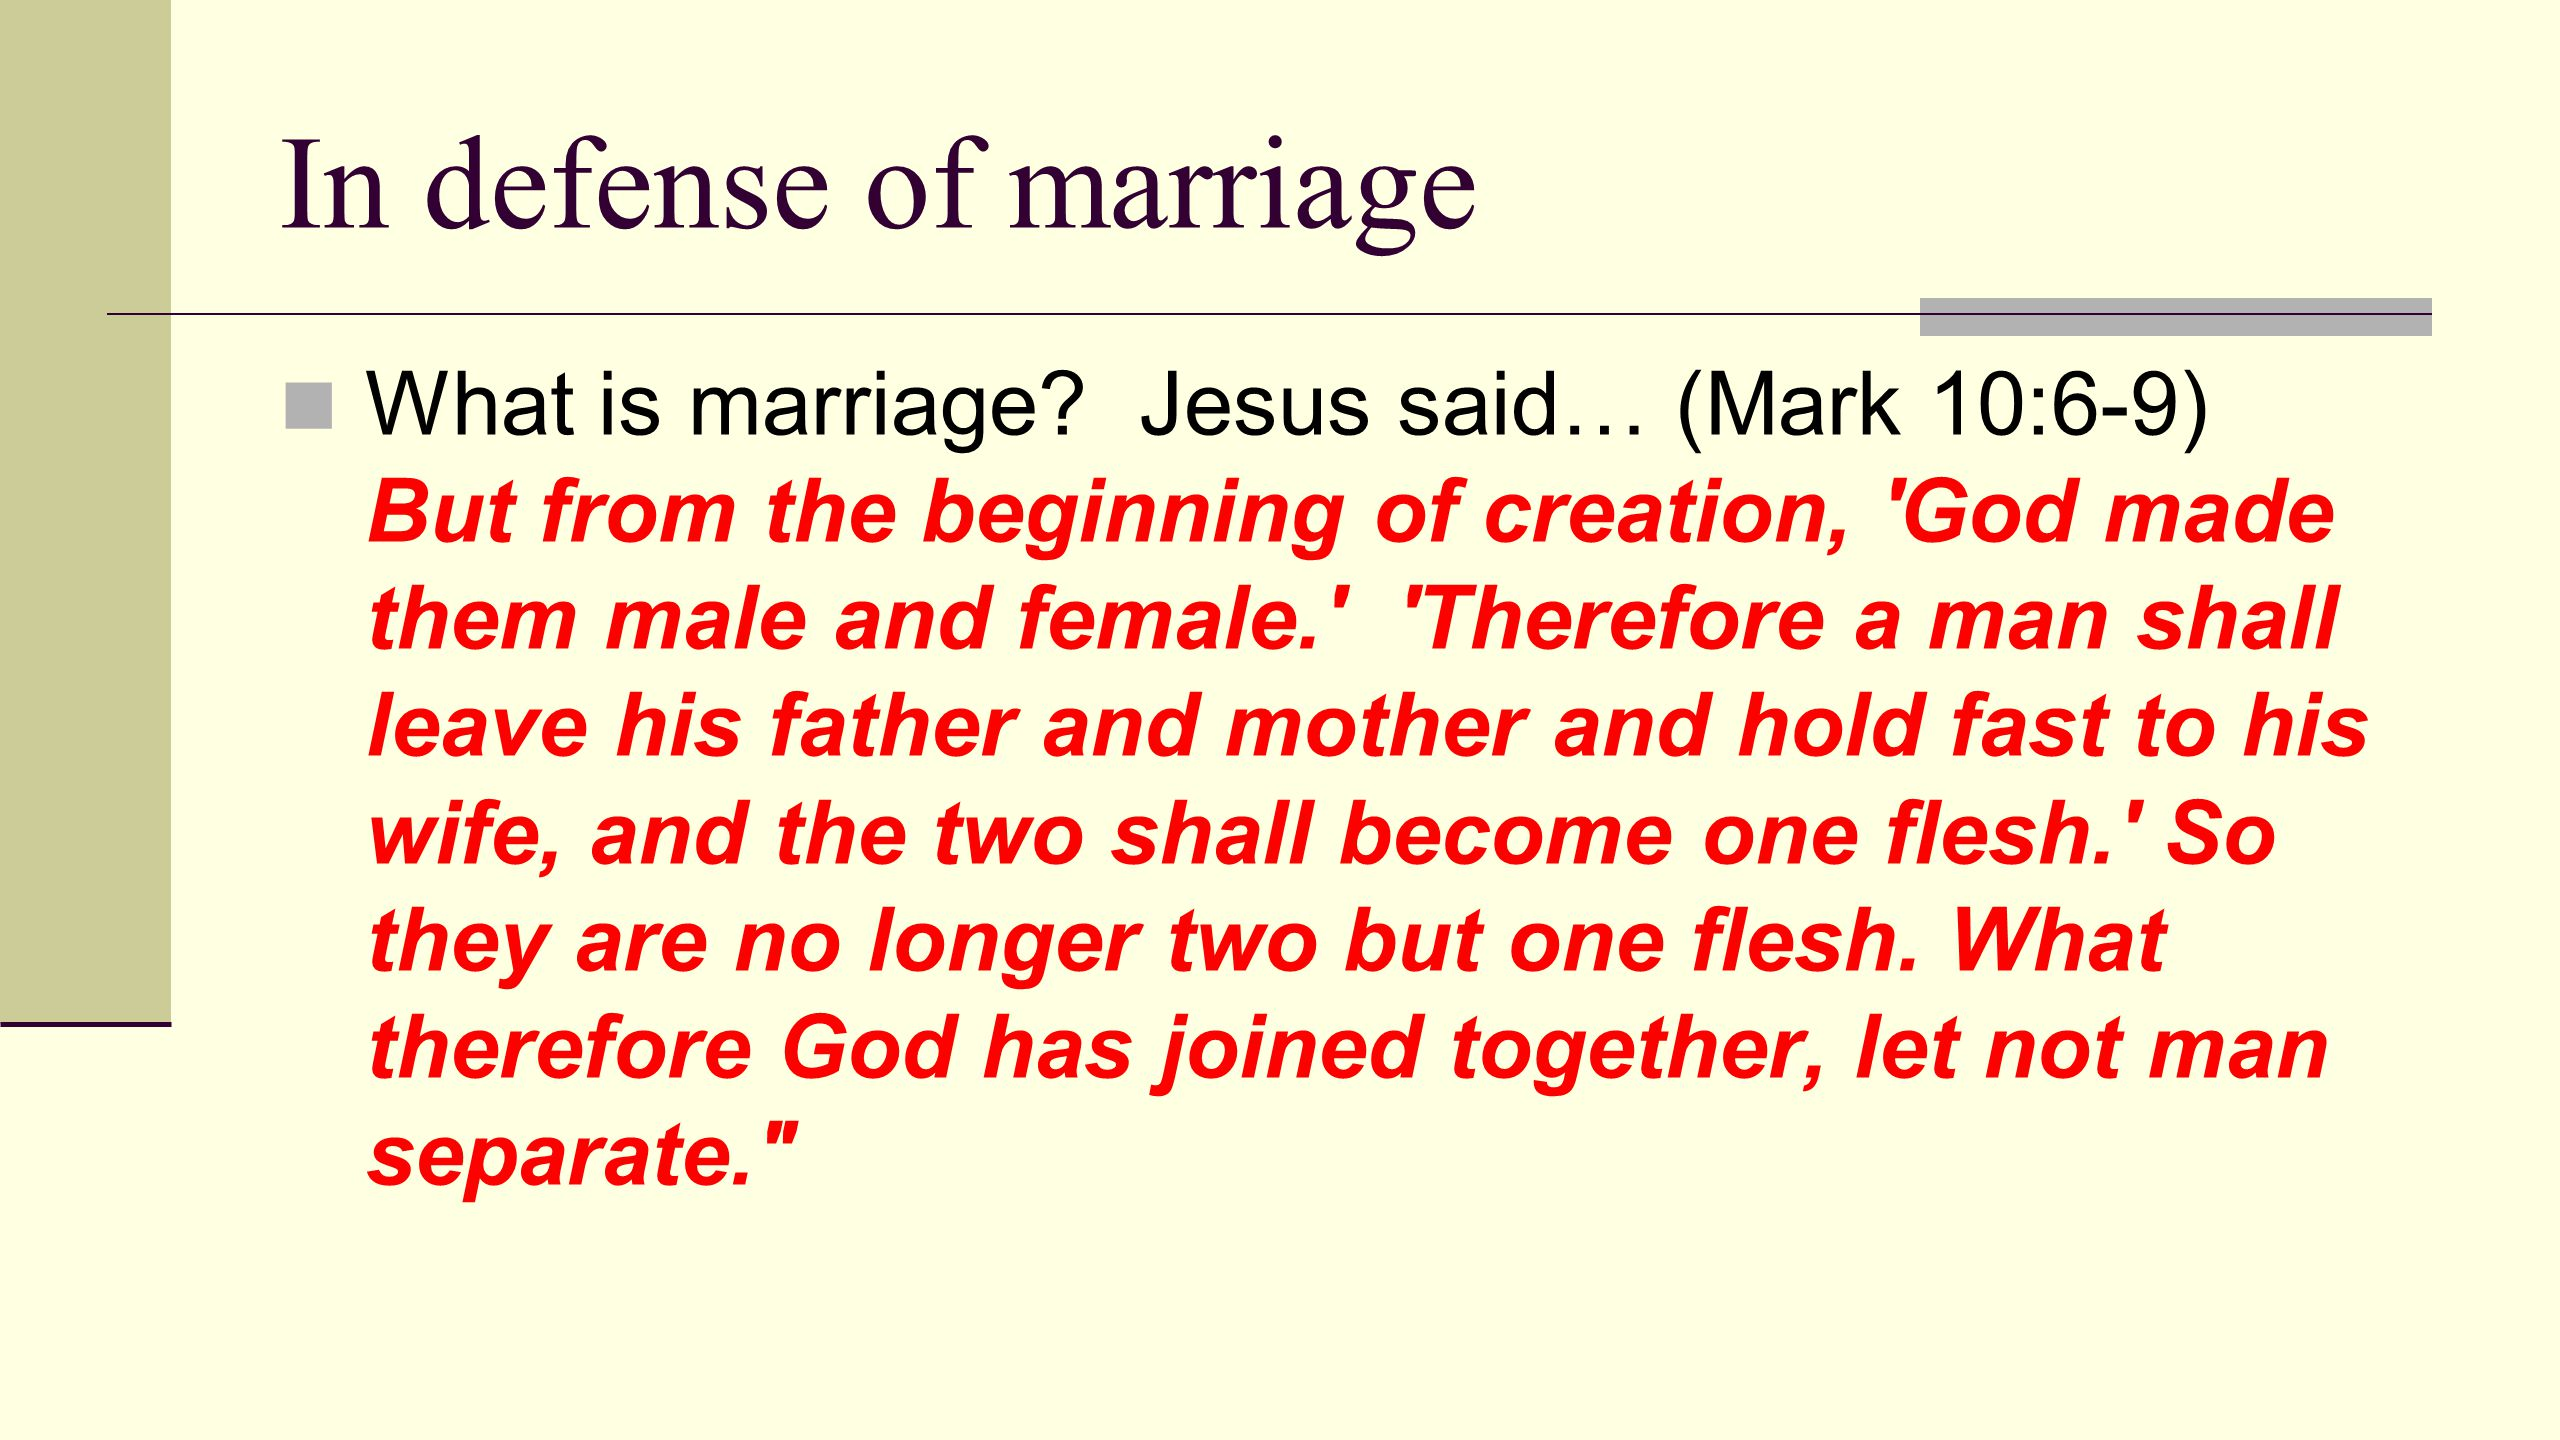 In defense of marriage